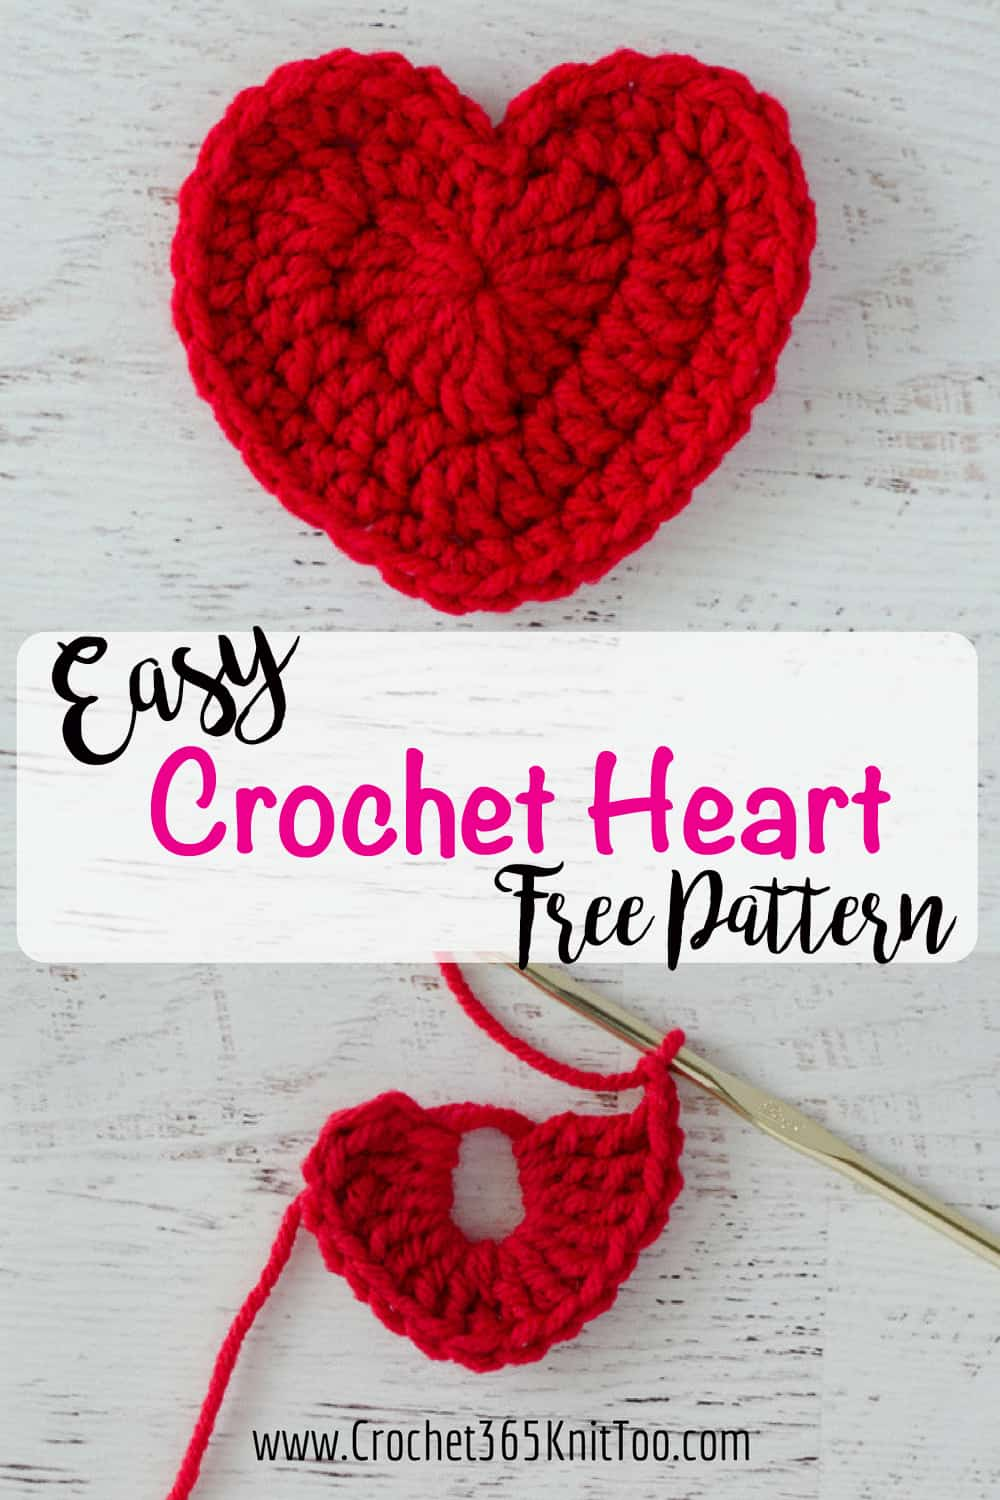 Crochet heart pattern crochet 365 knit too easy crochet heart pattern love this bankloansurffo Images